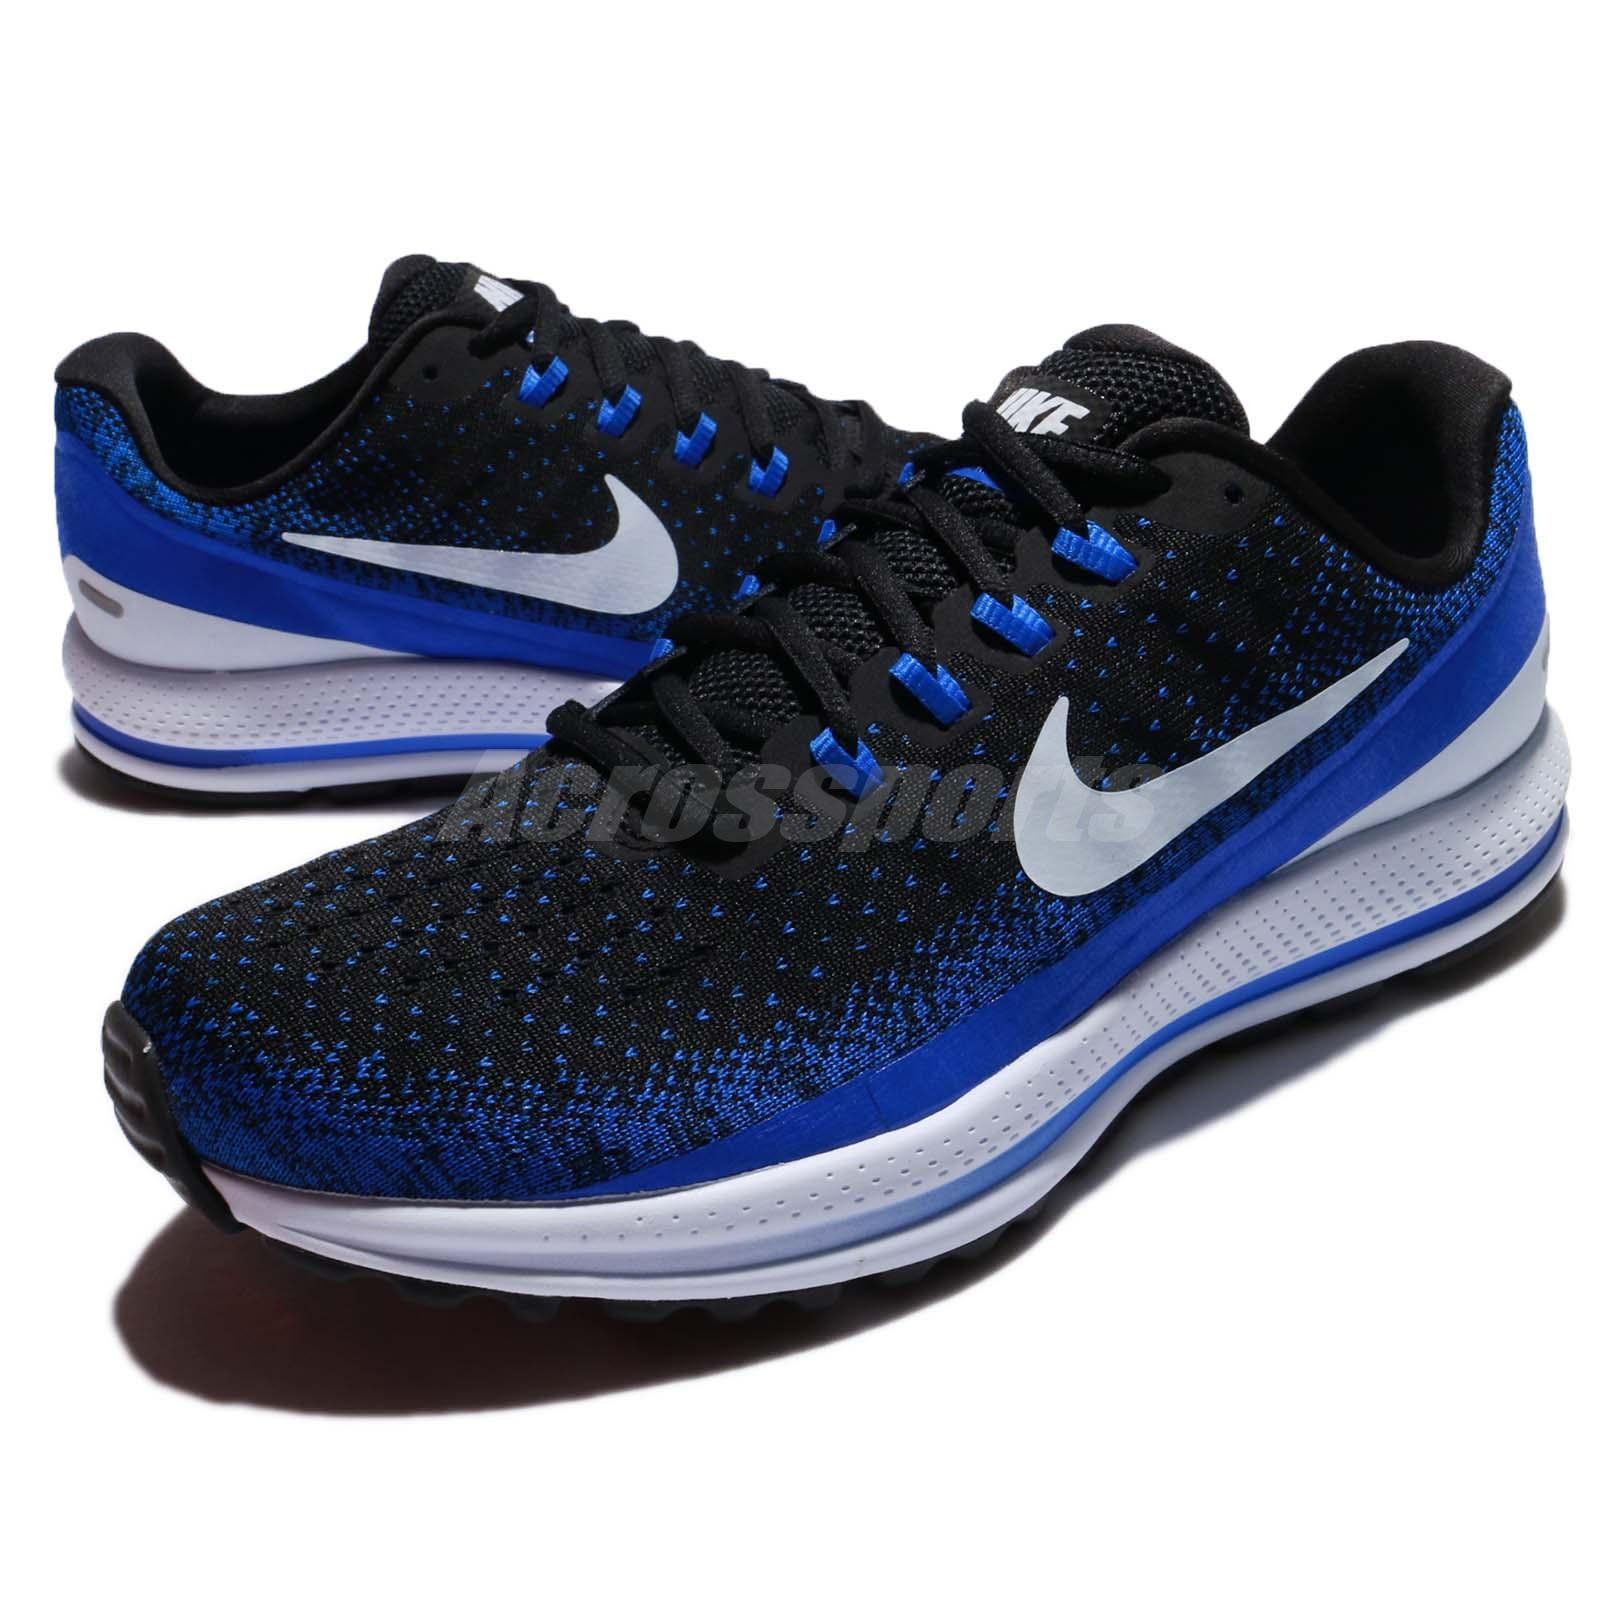 c550d1914bbe Details about Nike Air Zoom Vomero 13 Black Blue Tint Racer Men Running  Shoes 922908-002